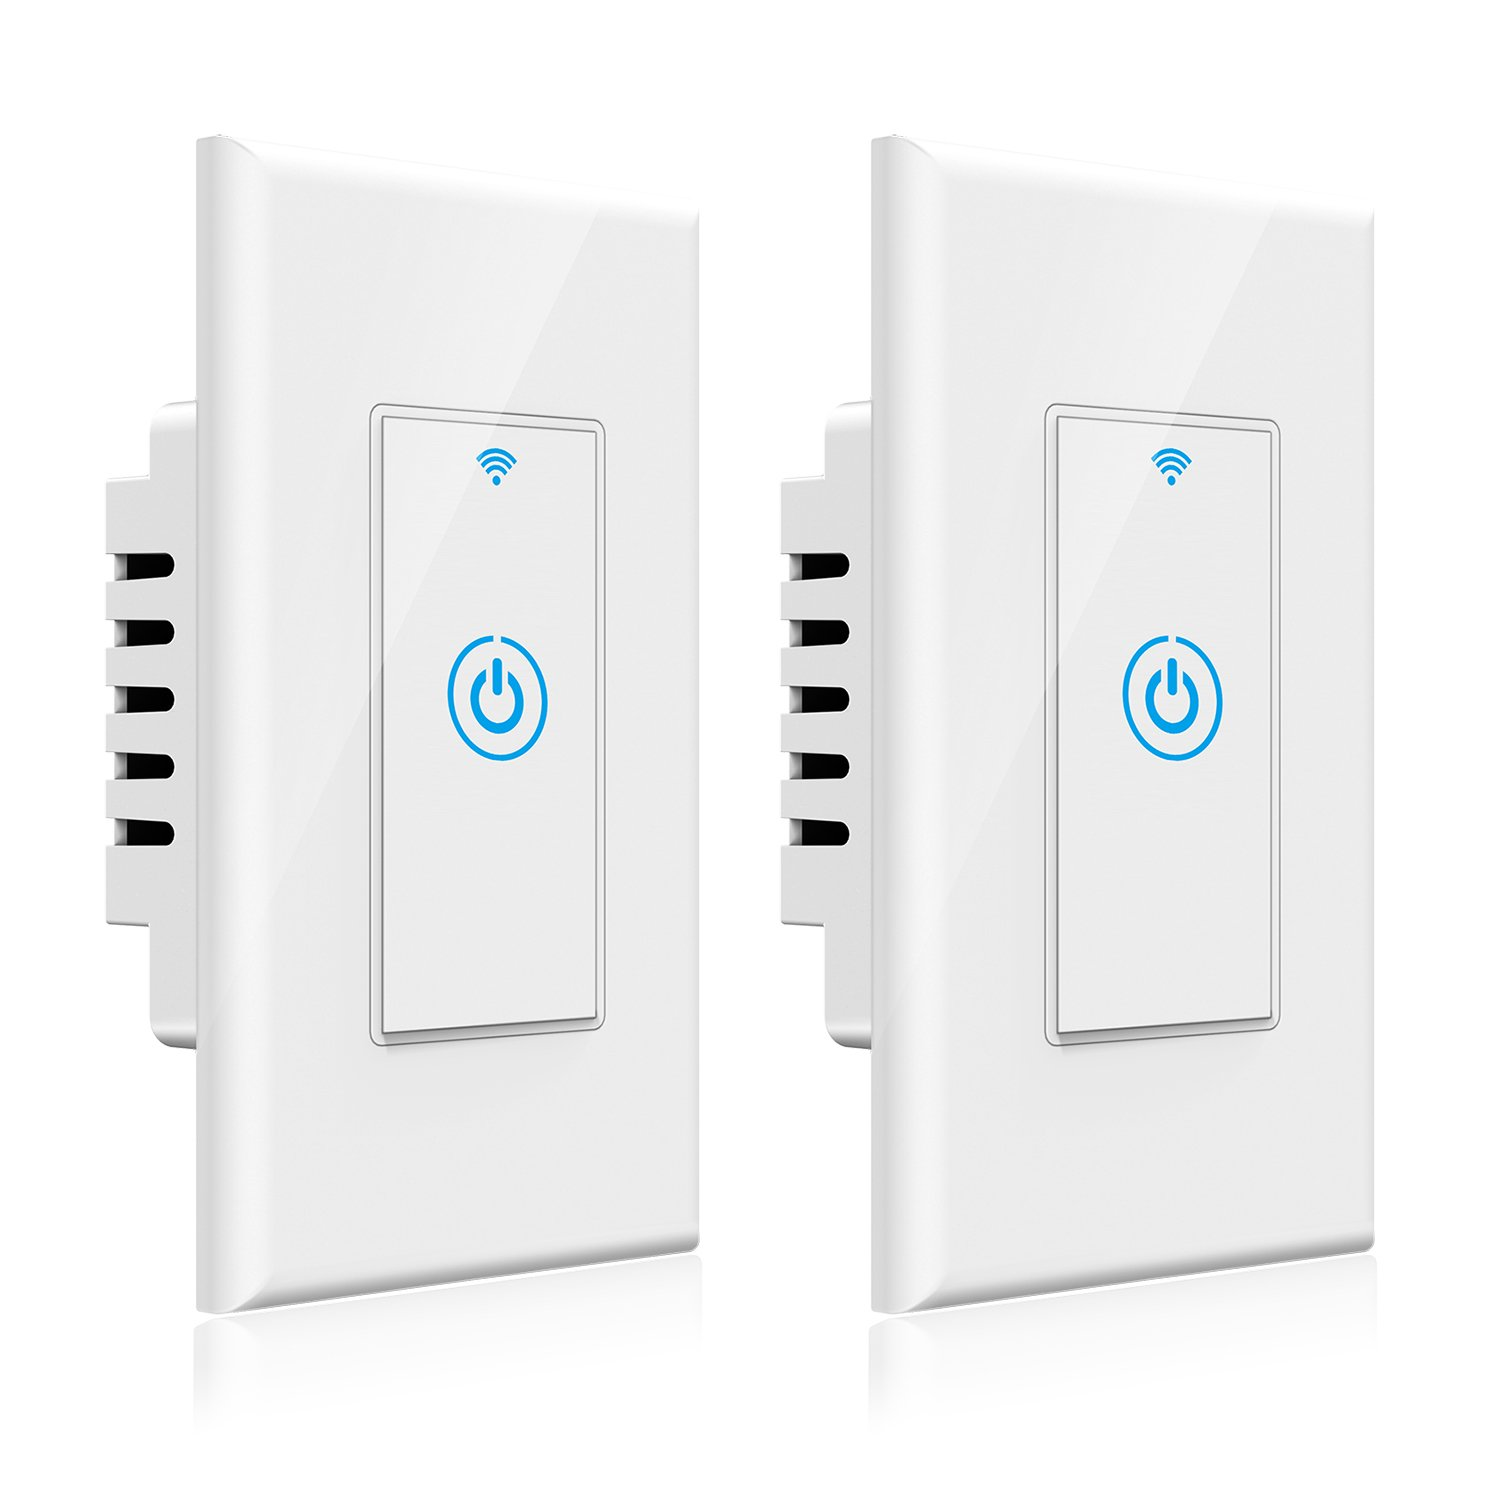 Smart Light Switch - Gosund Smart Wifi Light Wall Switch 15A Touch Timing Function Remote Control From Anywhere, Works with Alexa, Google Assistant And IFTTT, No Hub Required (2 pack)